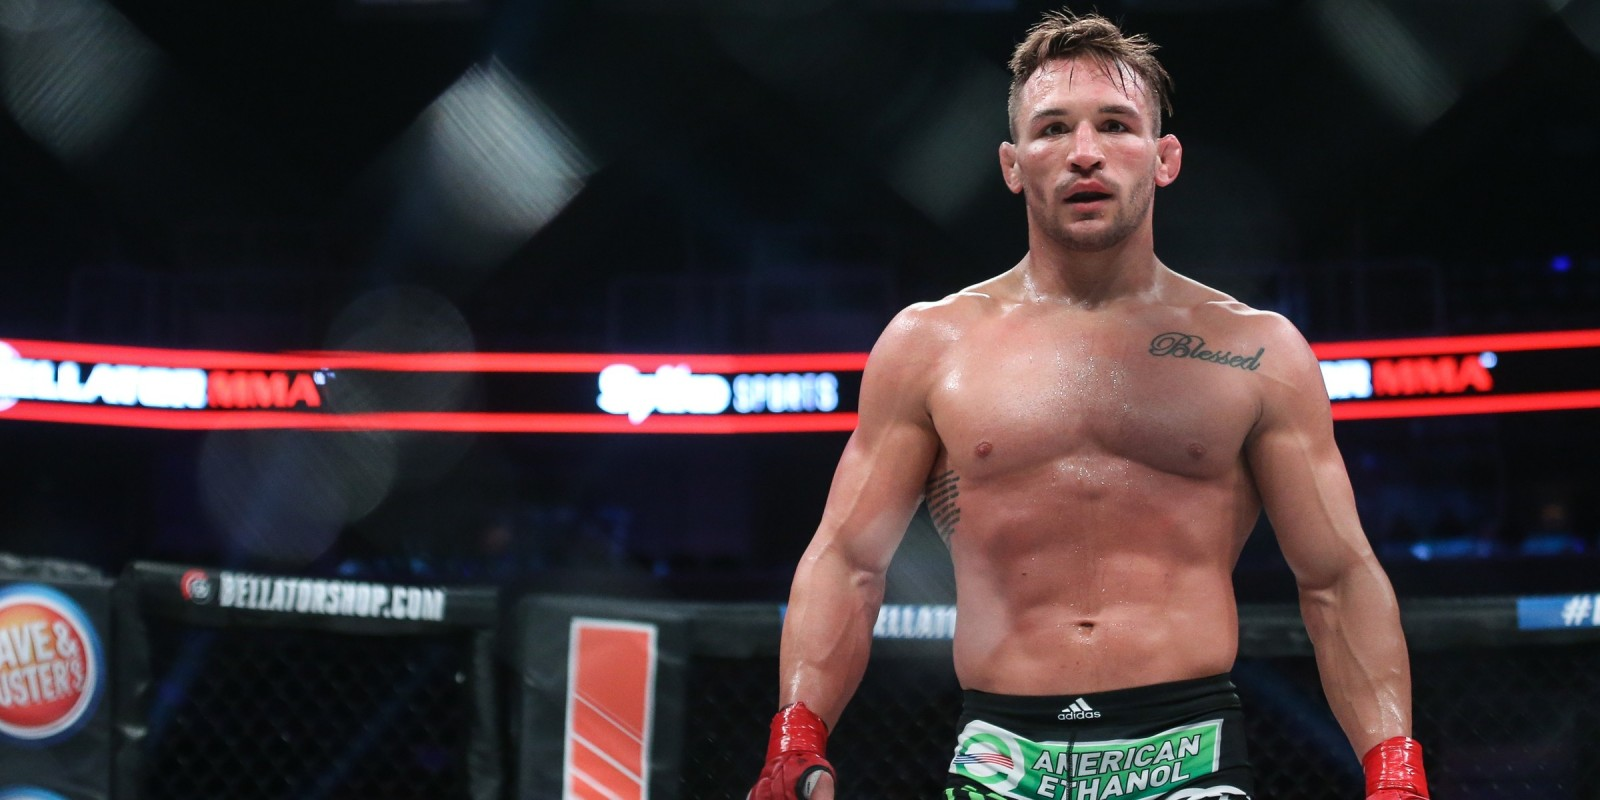 2016 MMA Bellator 165 Michael Chandler